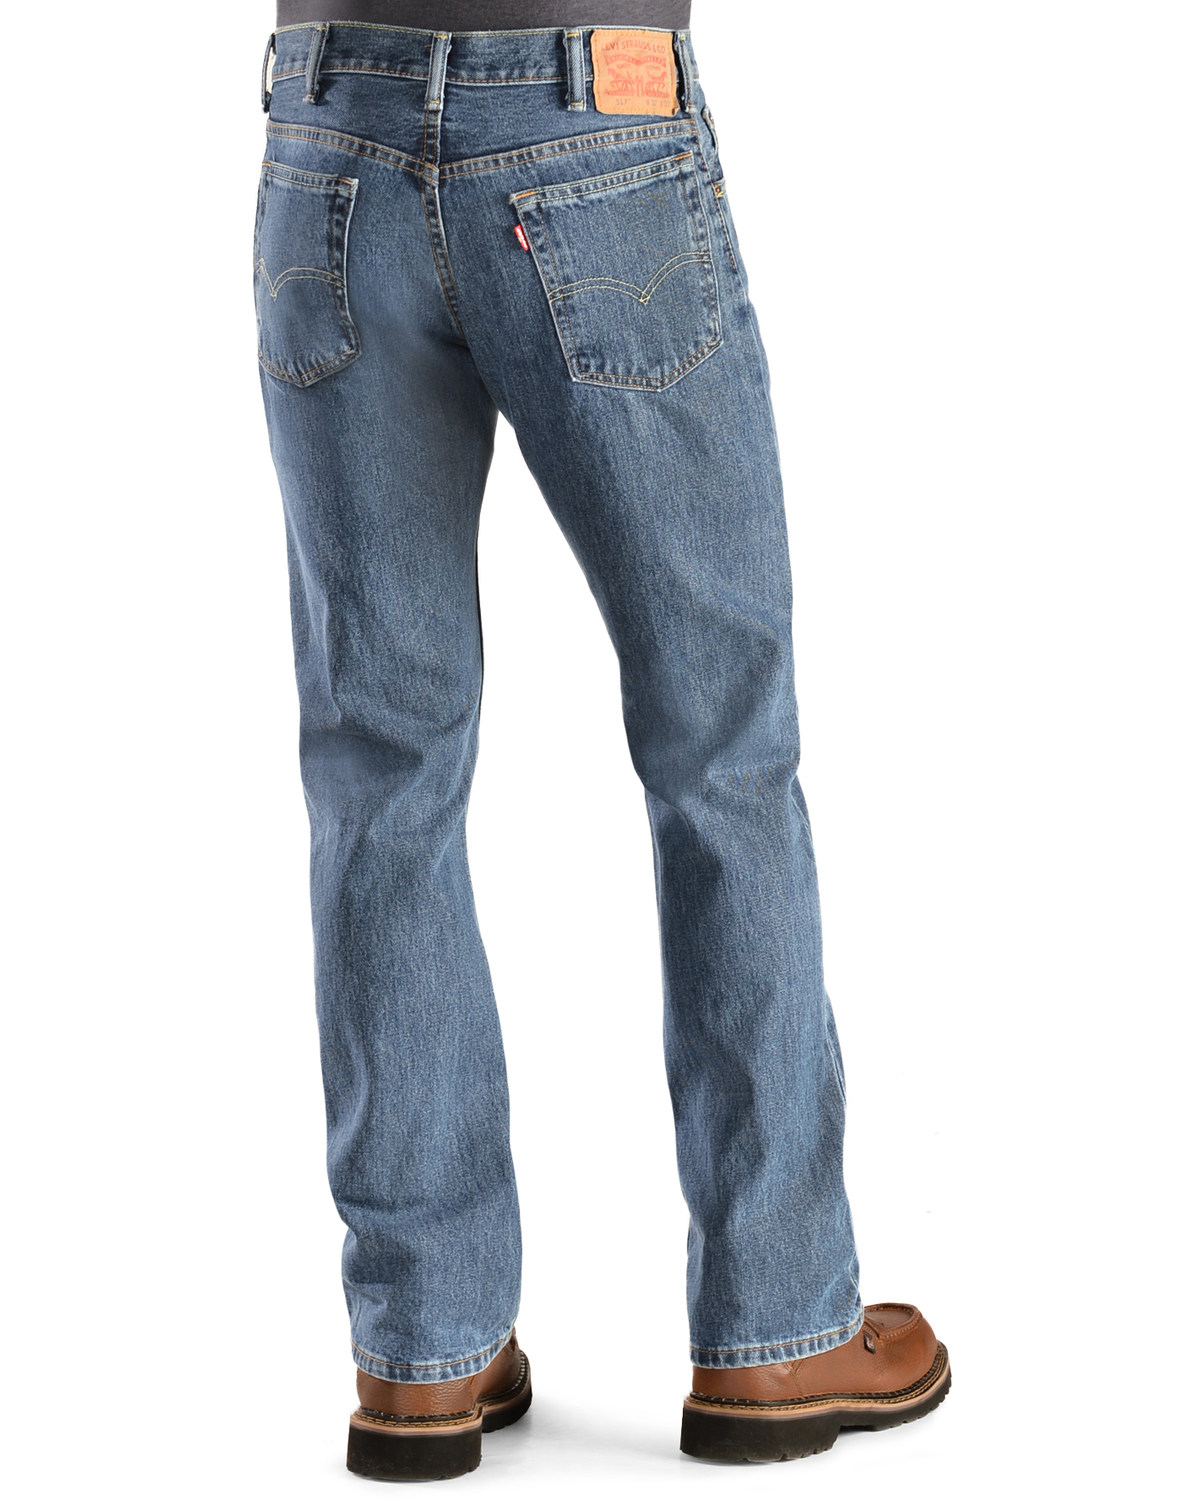 Free shipping BOTH ways on boot cut jeans, from our vast selection of styles. Fast delivery, and 24/7/ real-person service with a smile. Click or call